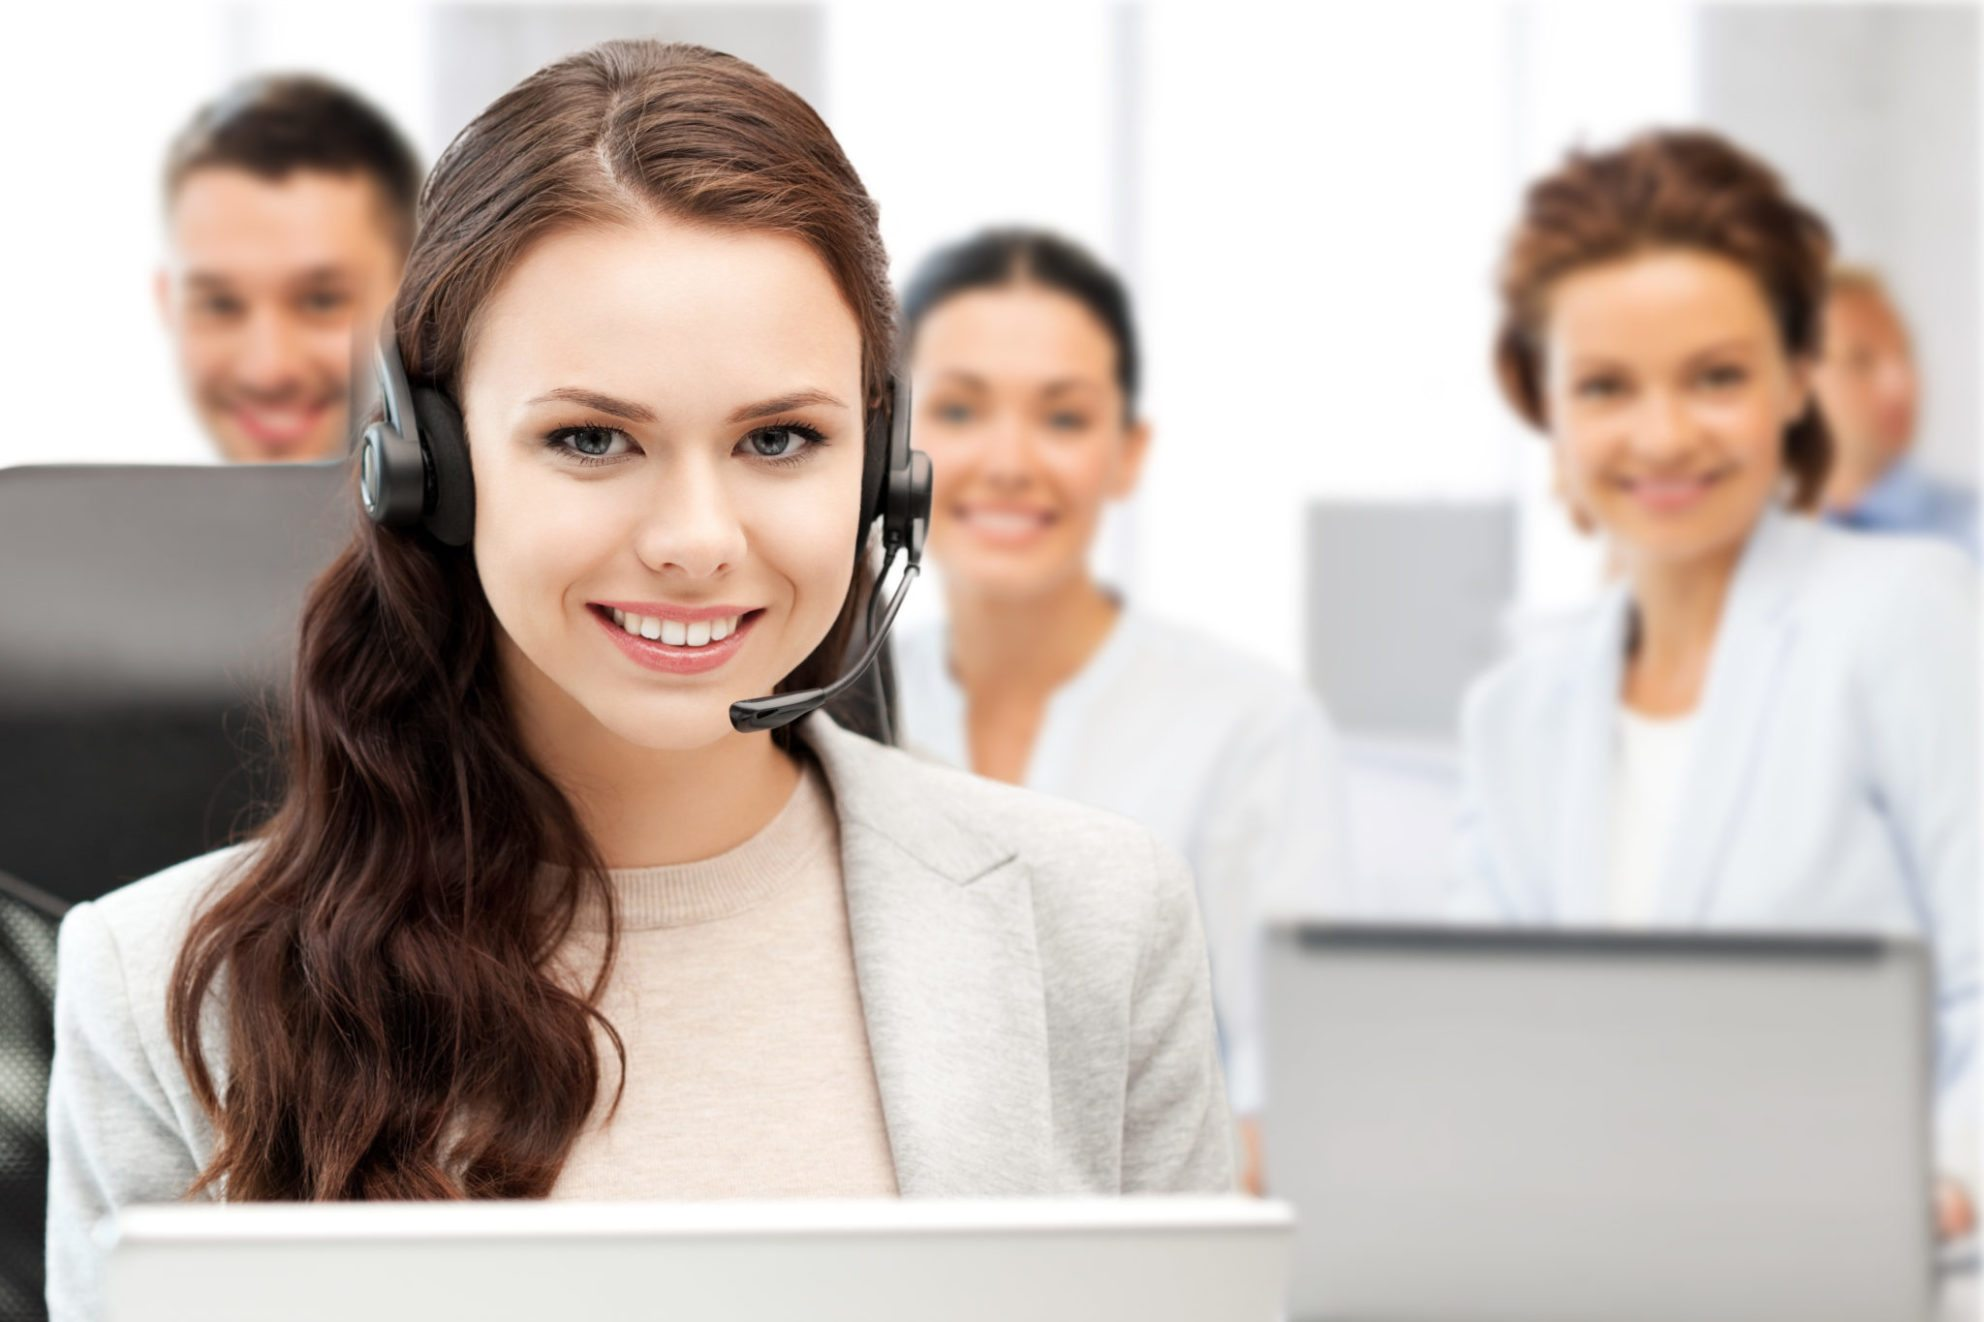 EShowings call centers reopen, new CEO claims 'sabotage'